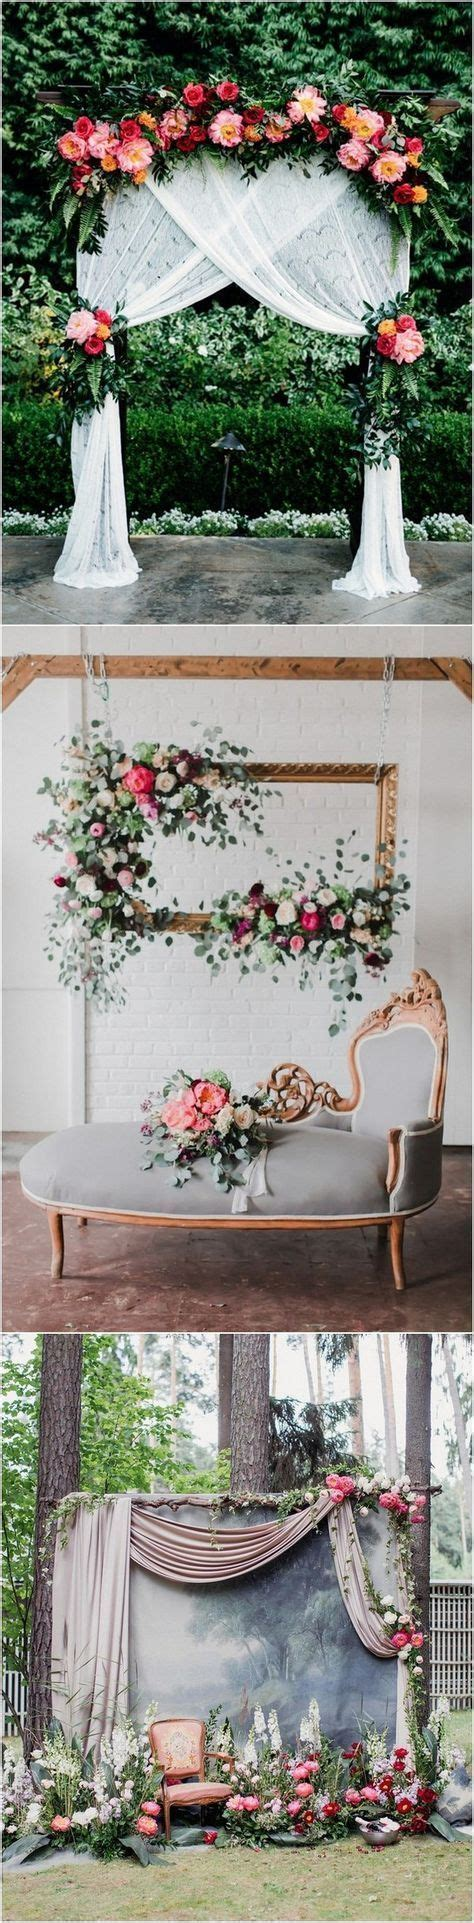 Wedding Backdrop Ideas Vintage by 44 Best Wedding Backdrop Ideas Images On